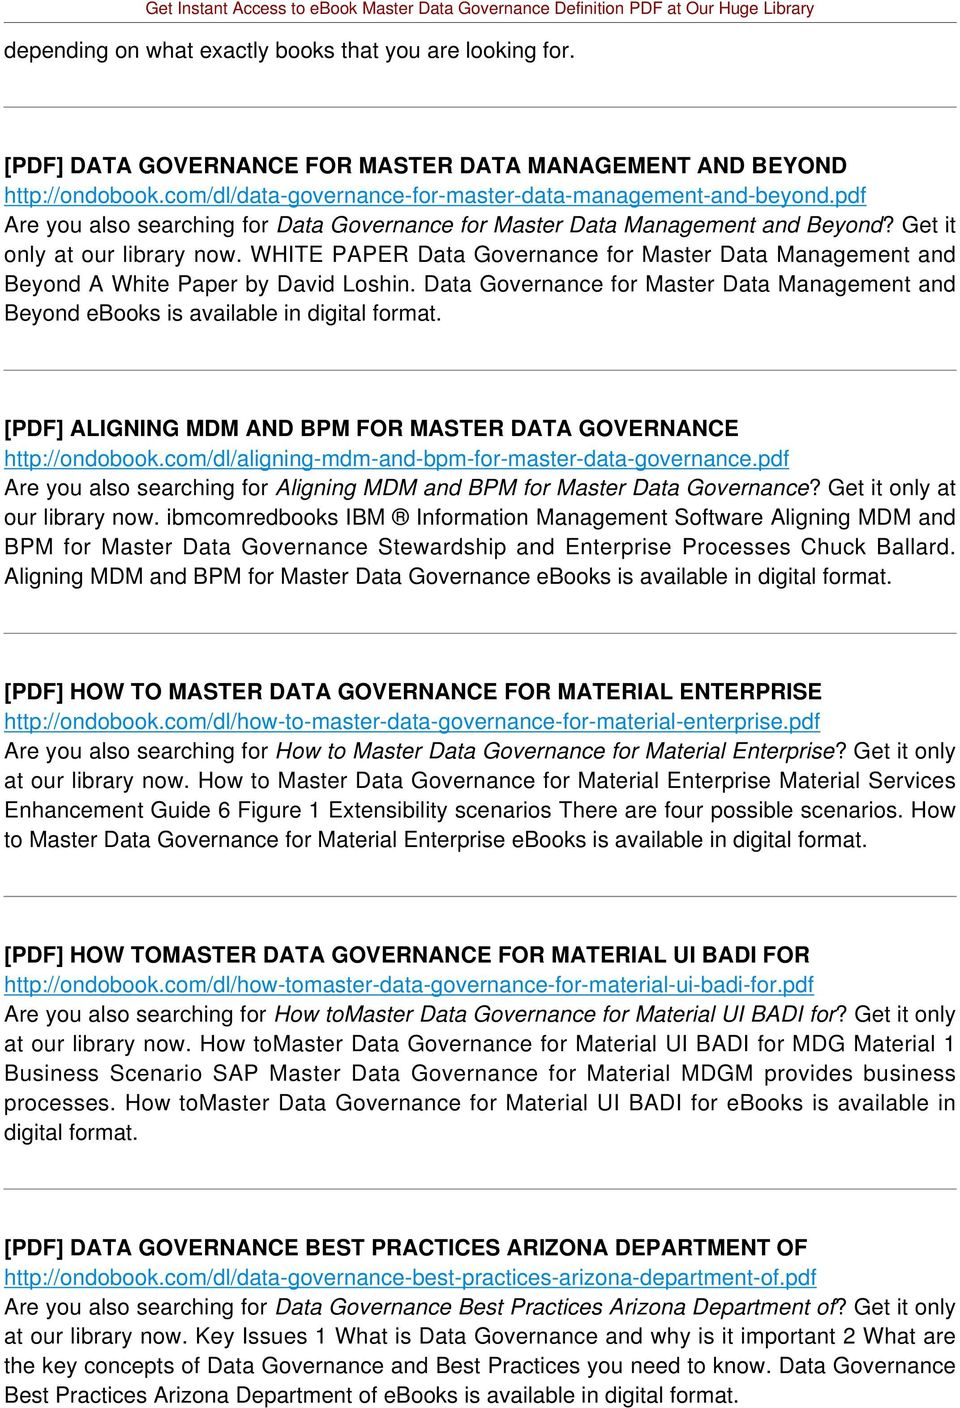 WHITE PAPER Data Governance for Master Data Management and Beyond A White Paper by David Loshin.